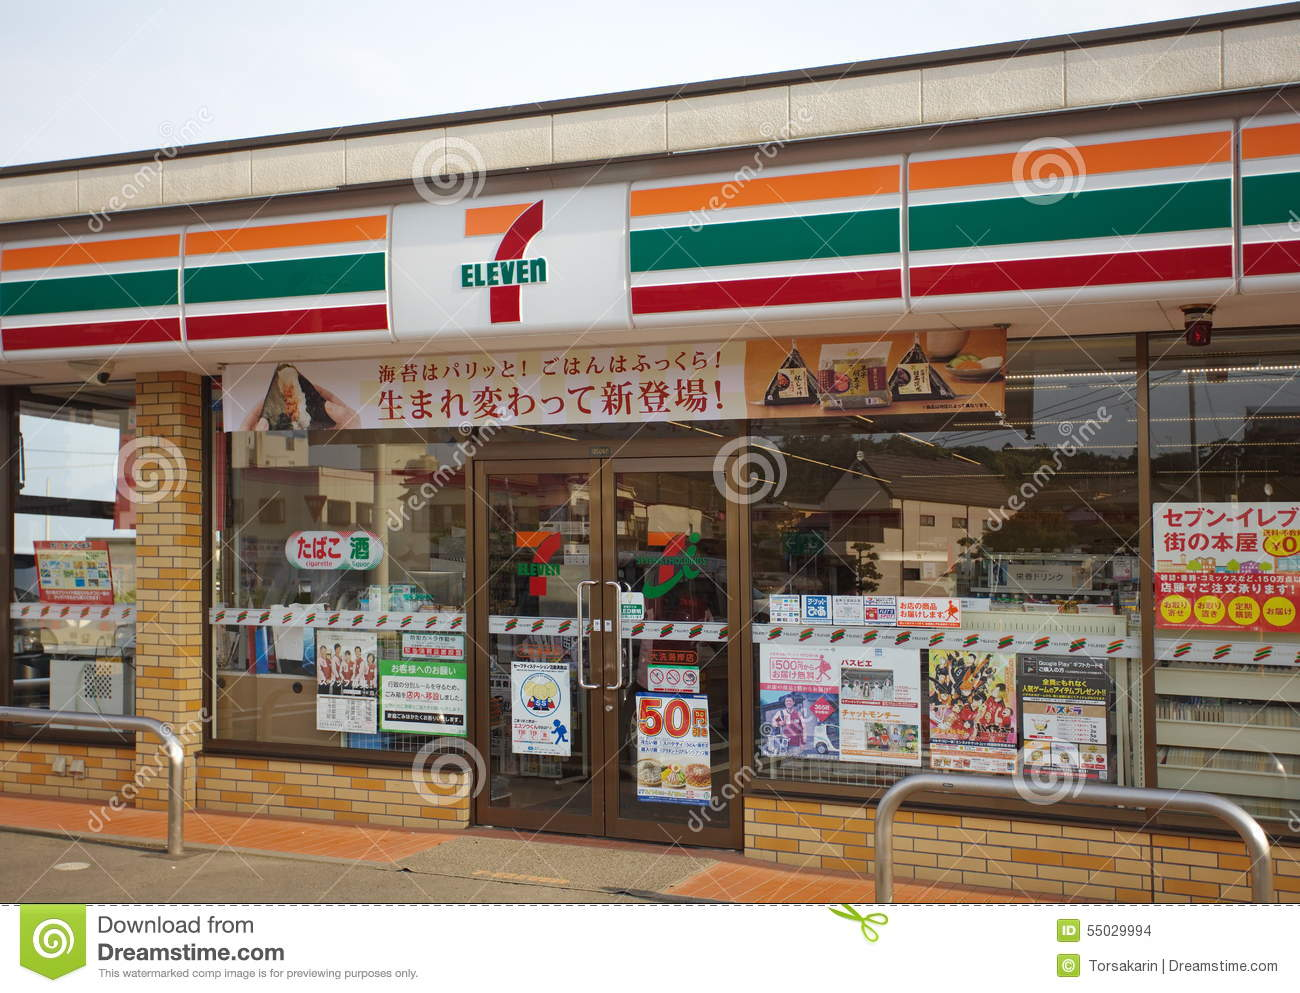 seven eleven japan case 7-eleven is a large chain of franchised convenience stores across more than 15 countries, including the usa, canada, japan, countries in the south-east asia region and australia the trading name of 7-eleven was established in 1946 to reflect the then trading hours of 7am to 11pm.